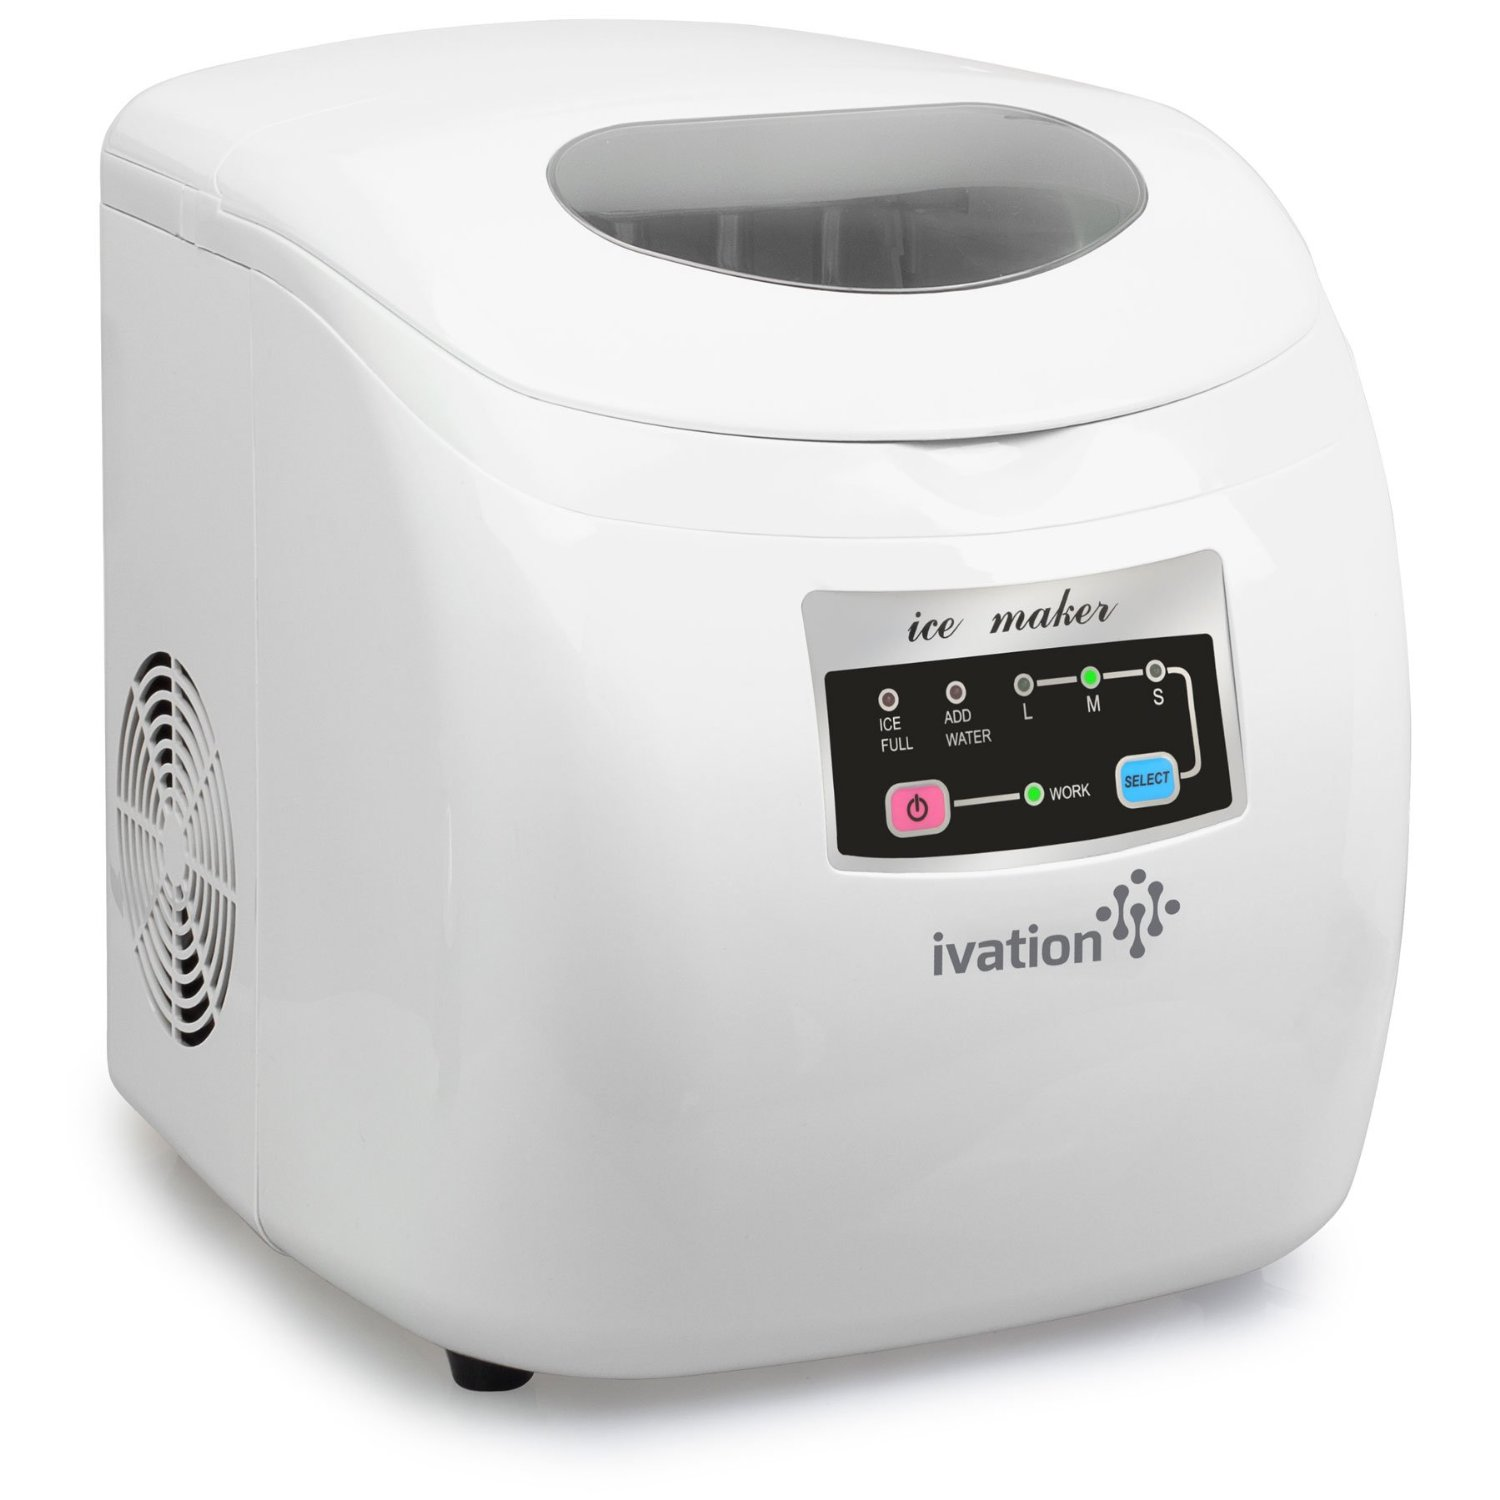 Ivation Portable High Capacity Ice Maker LCD Display